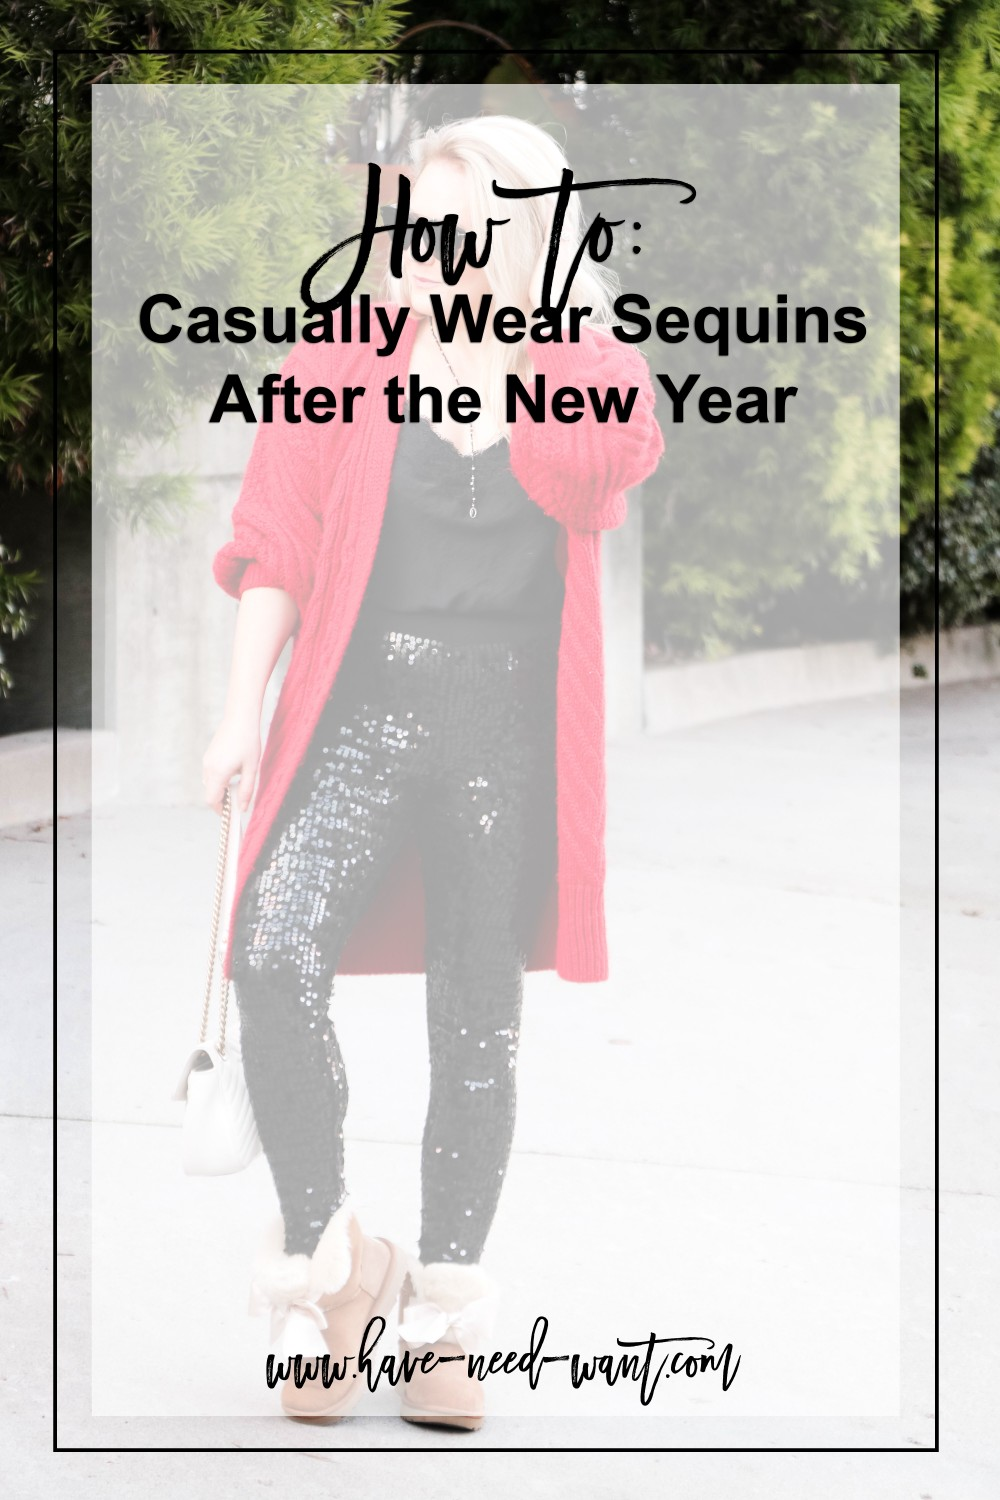 How to casually wear sequins after the New Year. When you're feeling extra throw on your sequin leggings for an elevated basic outfit. Click on the photo to read the full post! | Have Need Want #sequinleggins #sequinsafternewyears #stylingtips #casualoutfitinspo